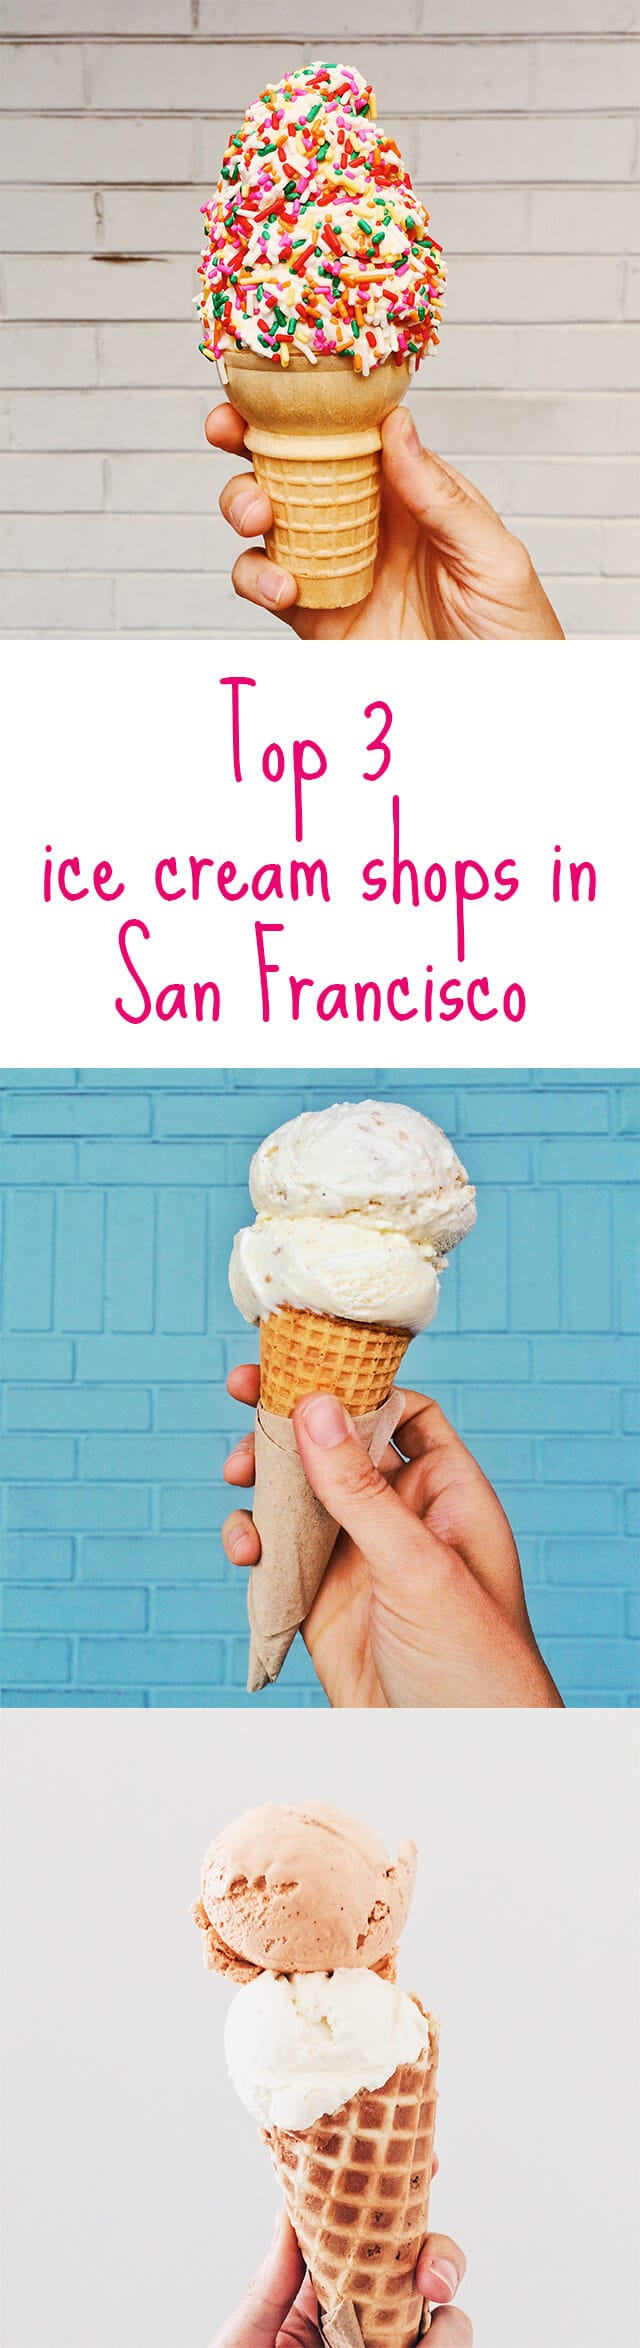 Top 3 ice cream shops in San Francisco - here's a rundown of the best ice cream in San Francisco